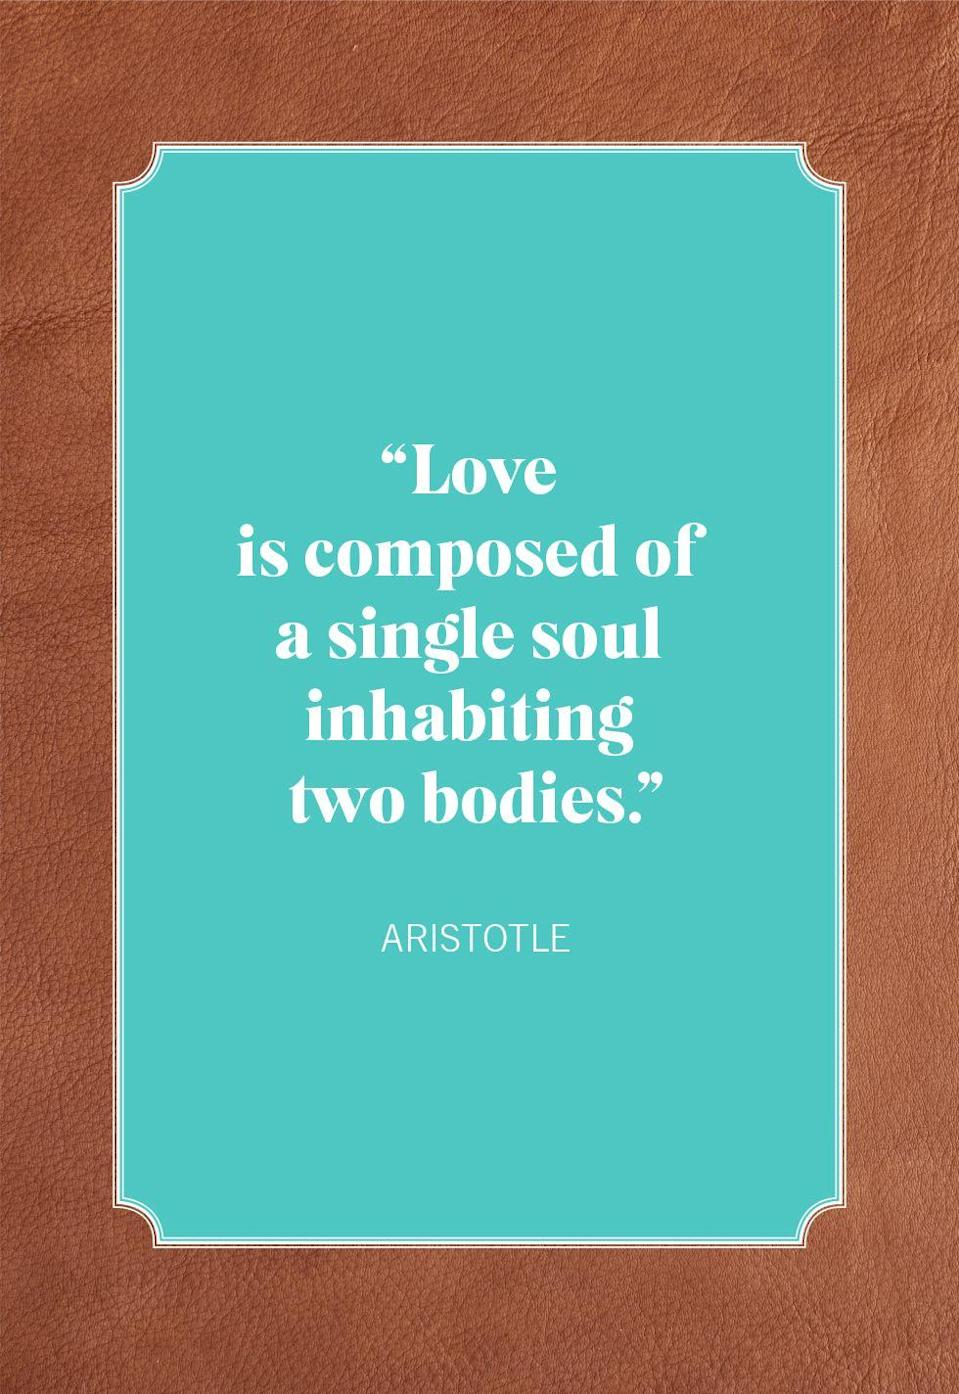 "<p>""Love is composed of a single soul inhabiting two bodies.""</p>"